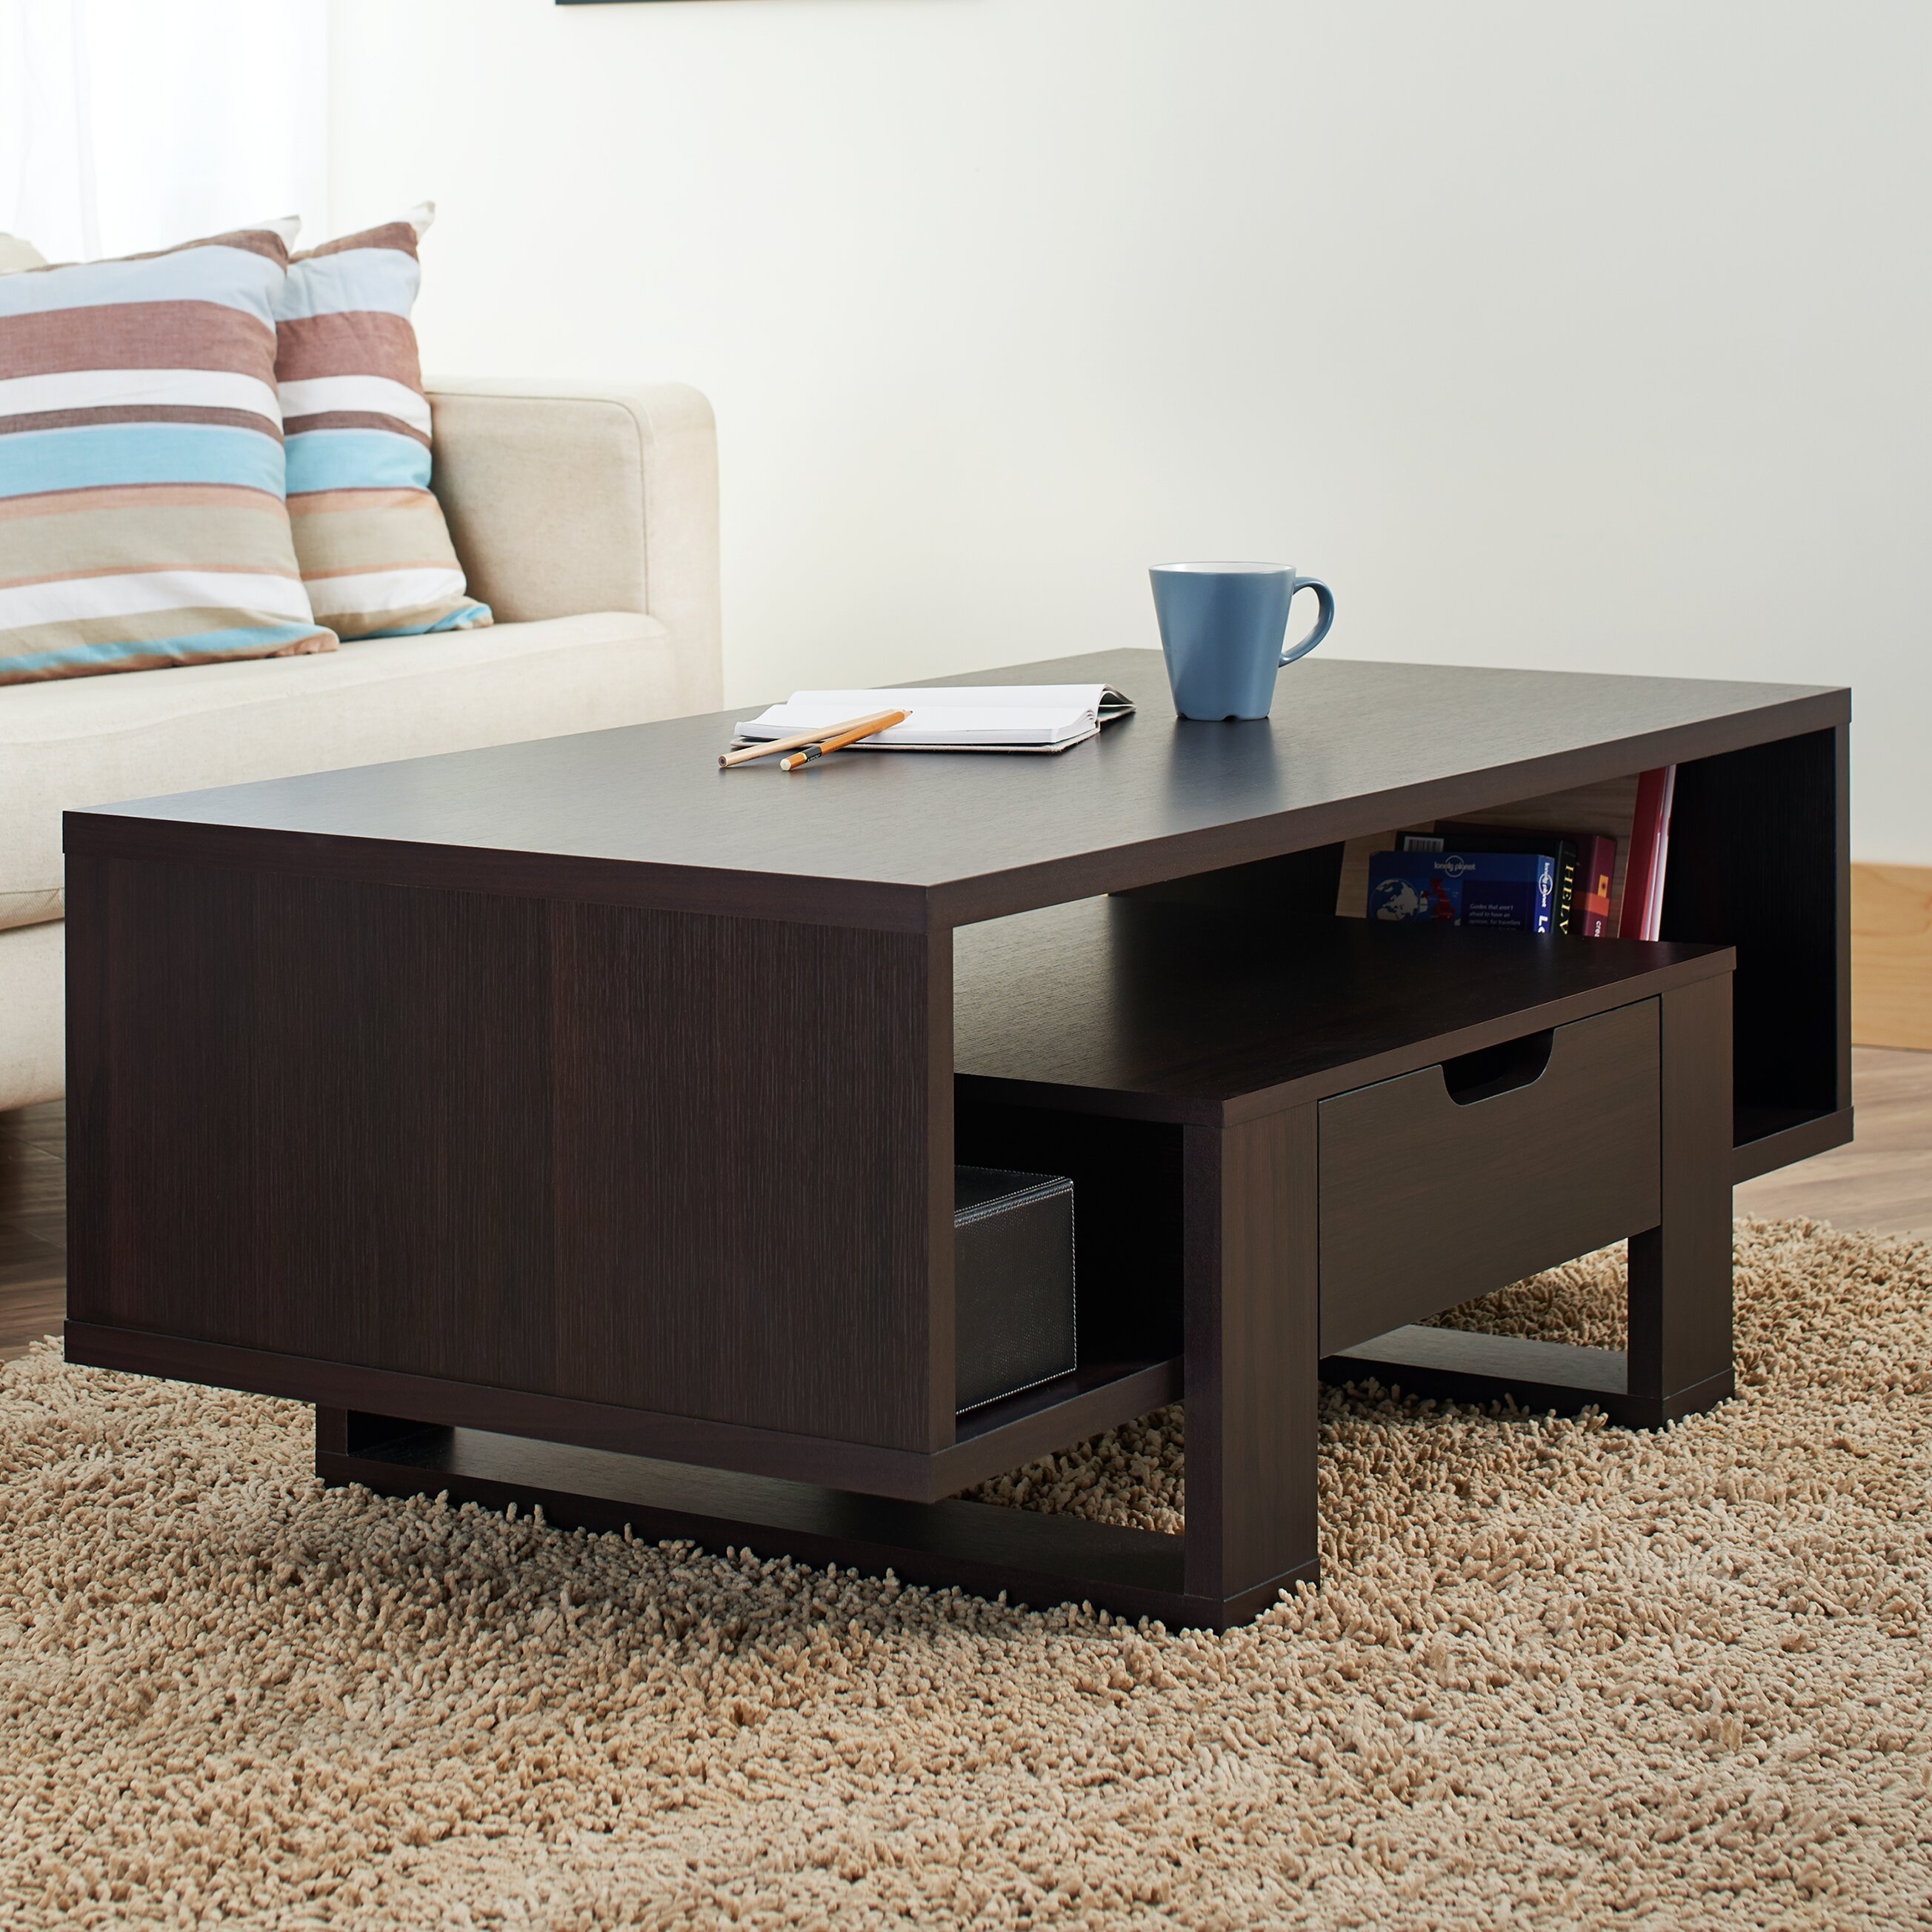 Hokku Designs Darwen Coffee Table Reviews Wayfair